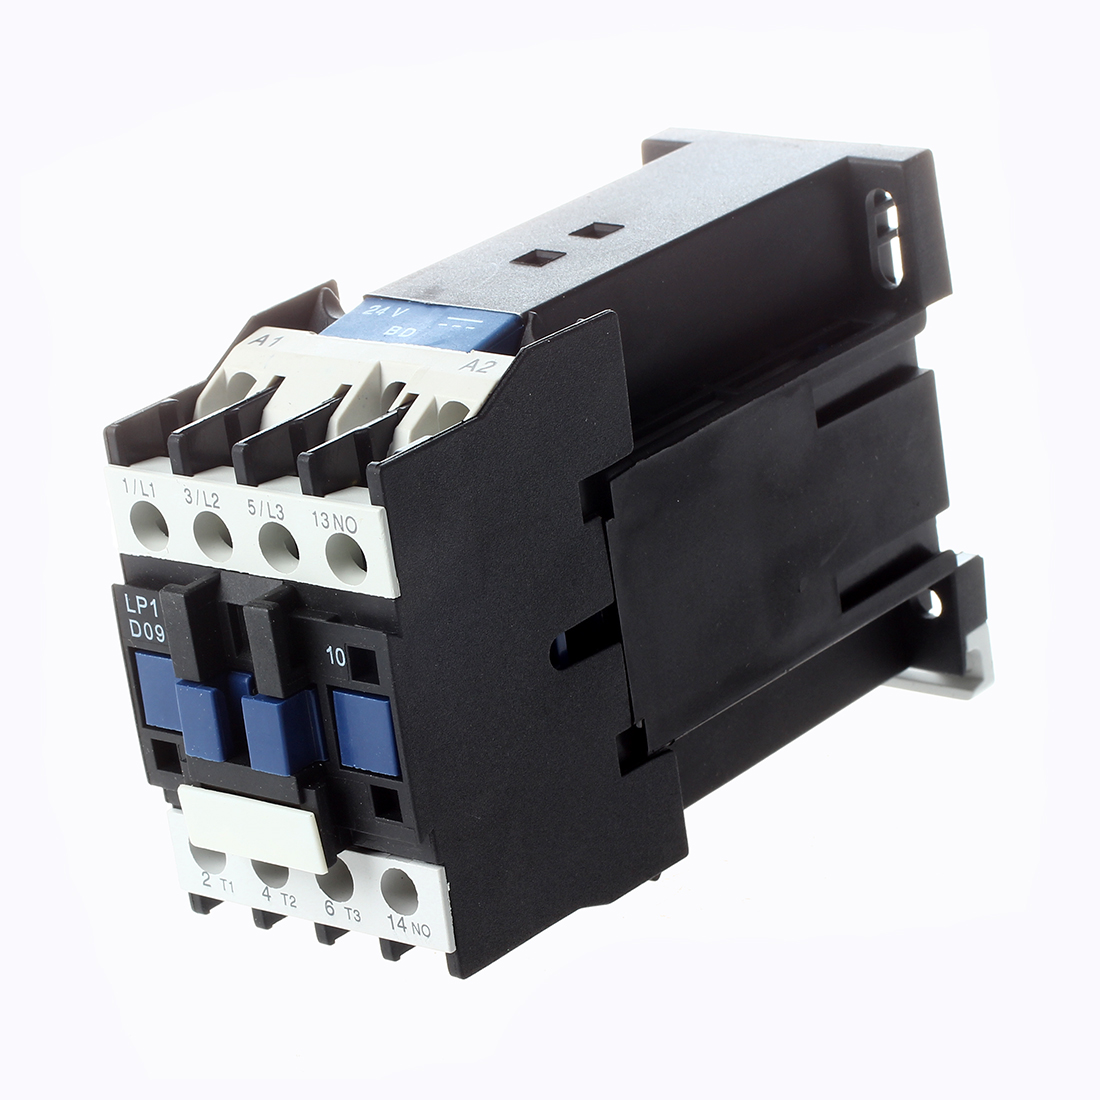 DSHA New Hot LP1-D09 Contactor 24V DC Coil, IN STOCK стоимость